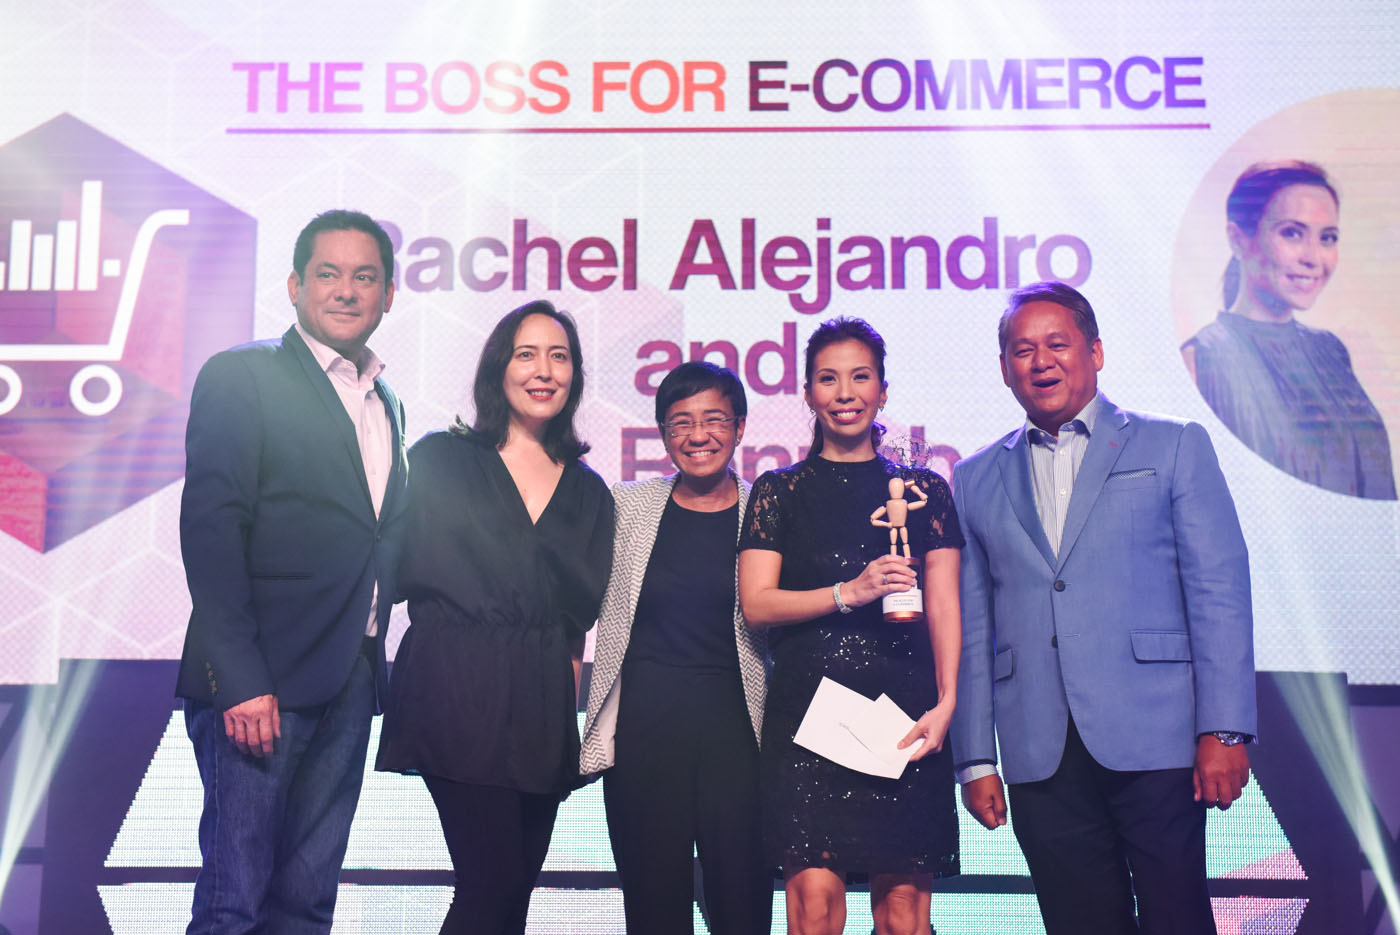 BOSS FOR E-COMMERCE. Barni Rennebeck (with trophy) flanked by some of the #BeTheBoss judges: (L to R) Mitch Locsin, Vice President and Head of PLDT SME Nation, Laura Verallo de Bertotto, CEO of VMV Hypoallergenics, Maria Ressa, CEO and Executive Editor or Rappler.com, and Eric Alberto, Executive Vice President for PLDT